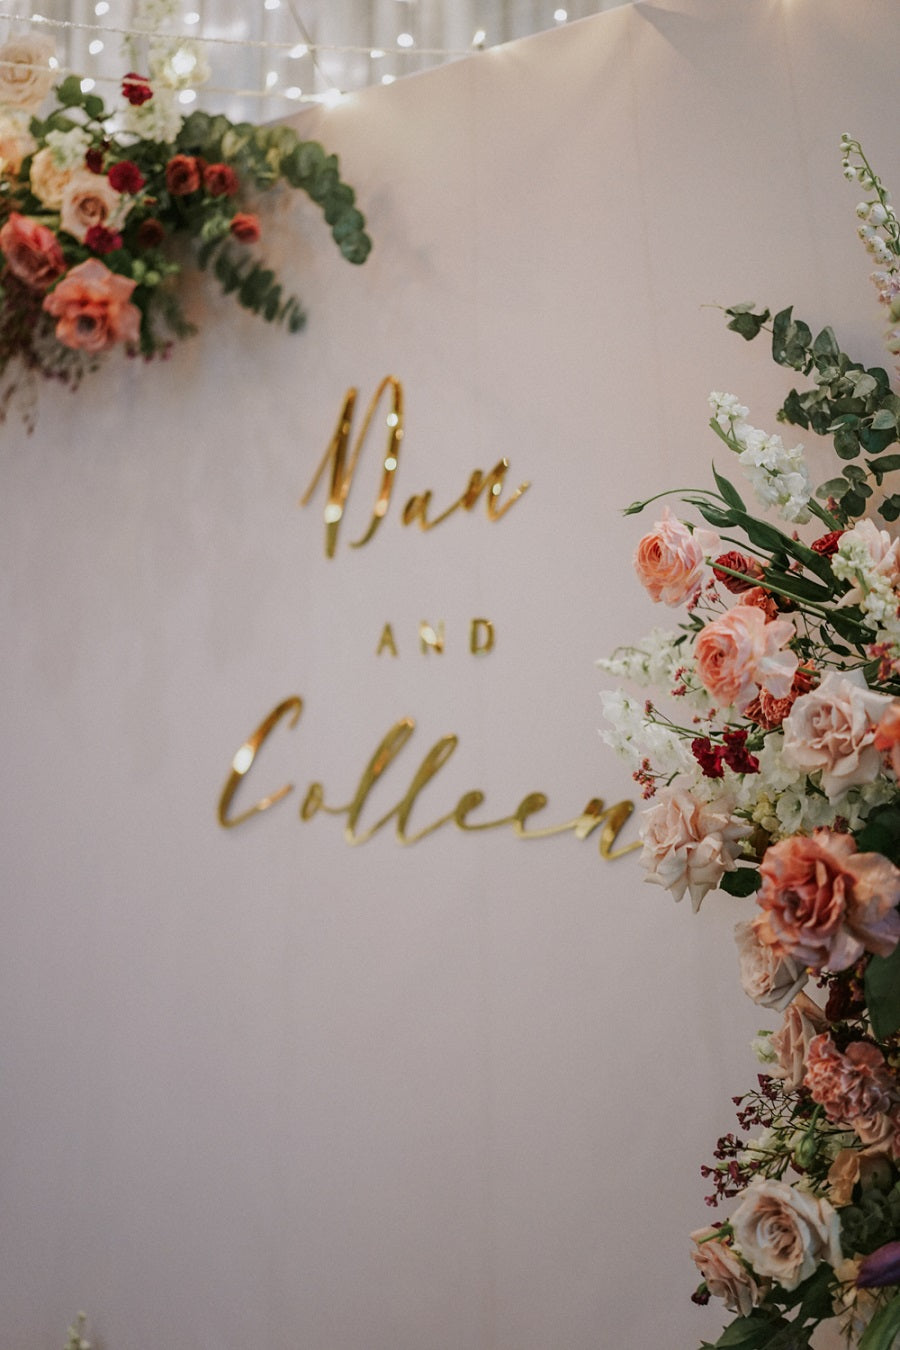 Close up of custom acrylic couple name in gold on white backdrop for wedding dinner at Park Royal Pickering Hotel Singapore